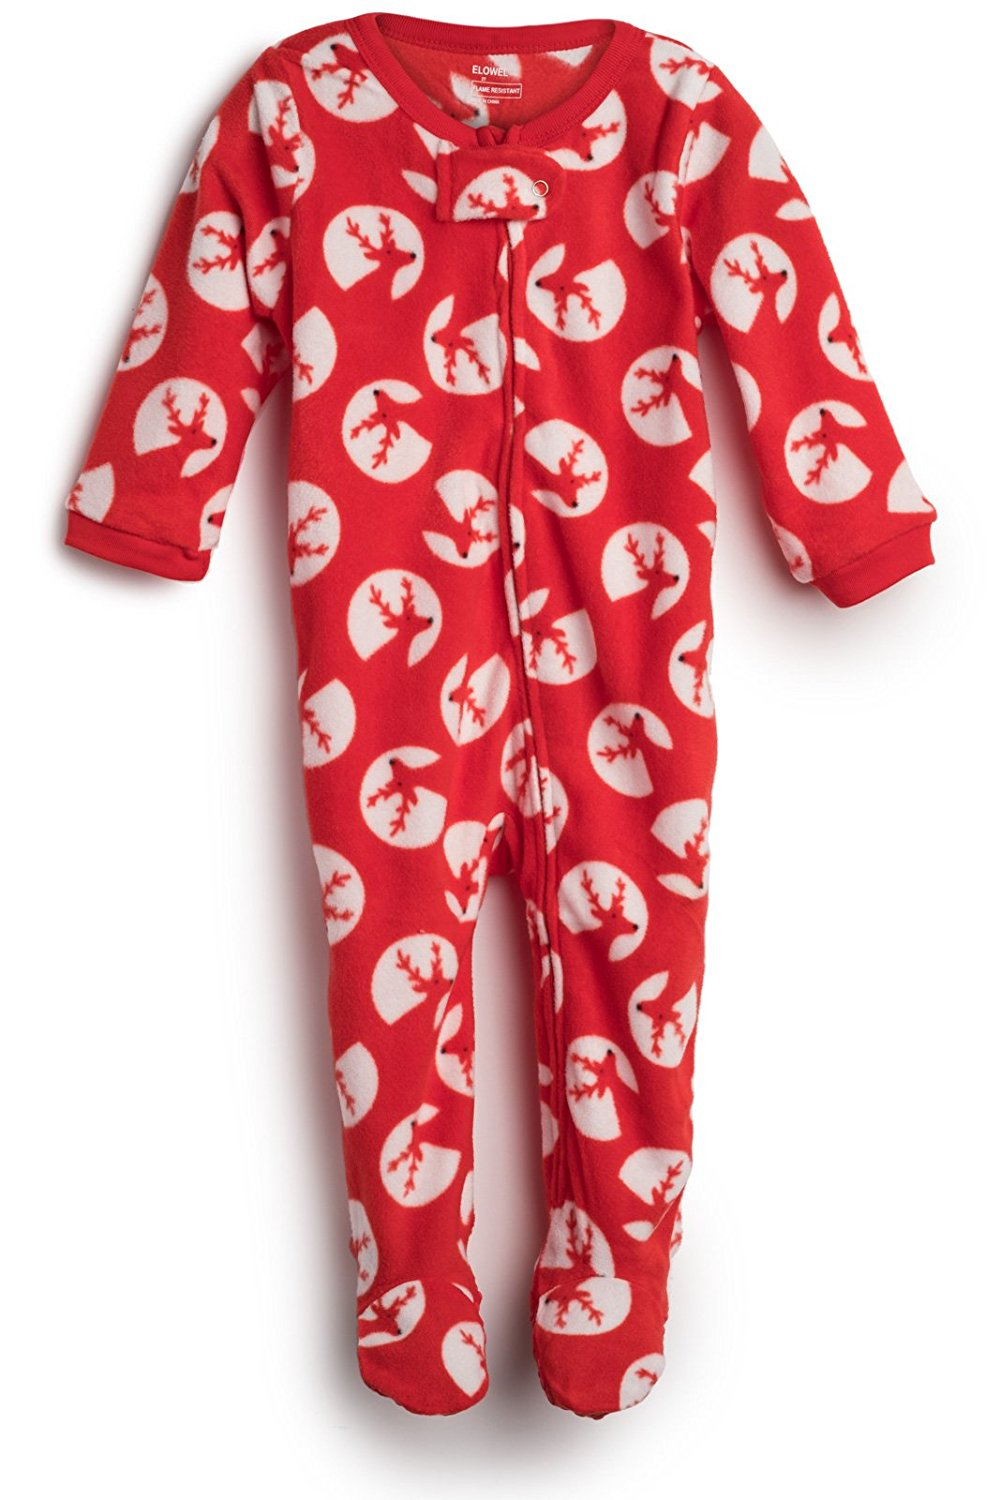 6e56b4a798 Get Quotations · Elowel Baby Girls Footed Fleece Sleeper Pajamas (Size  6M-5Years)